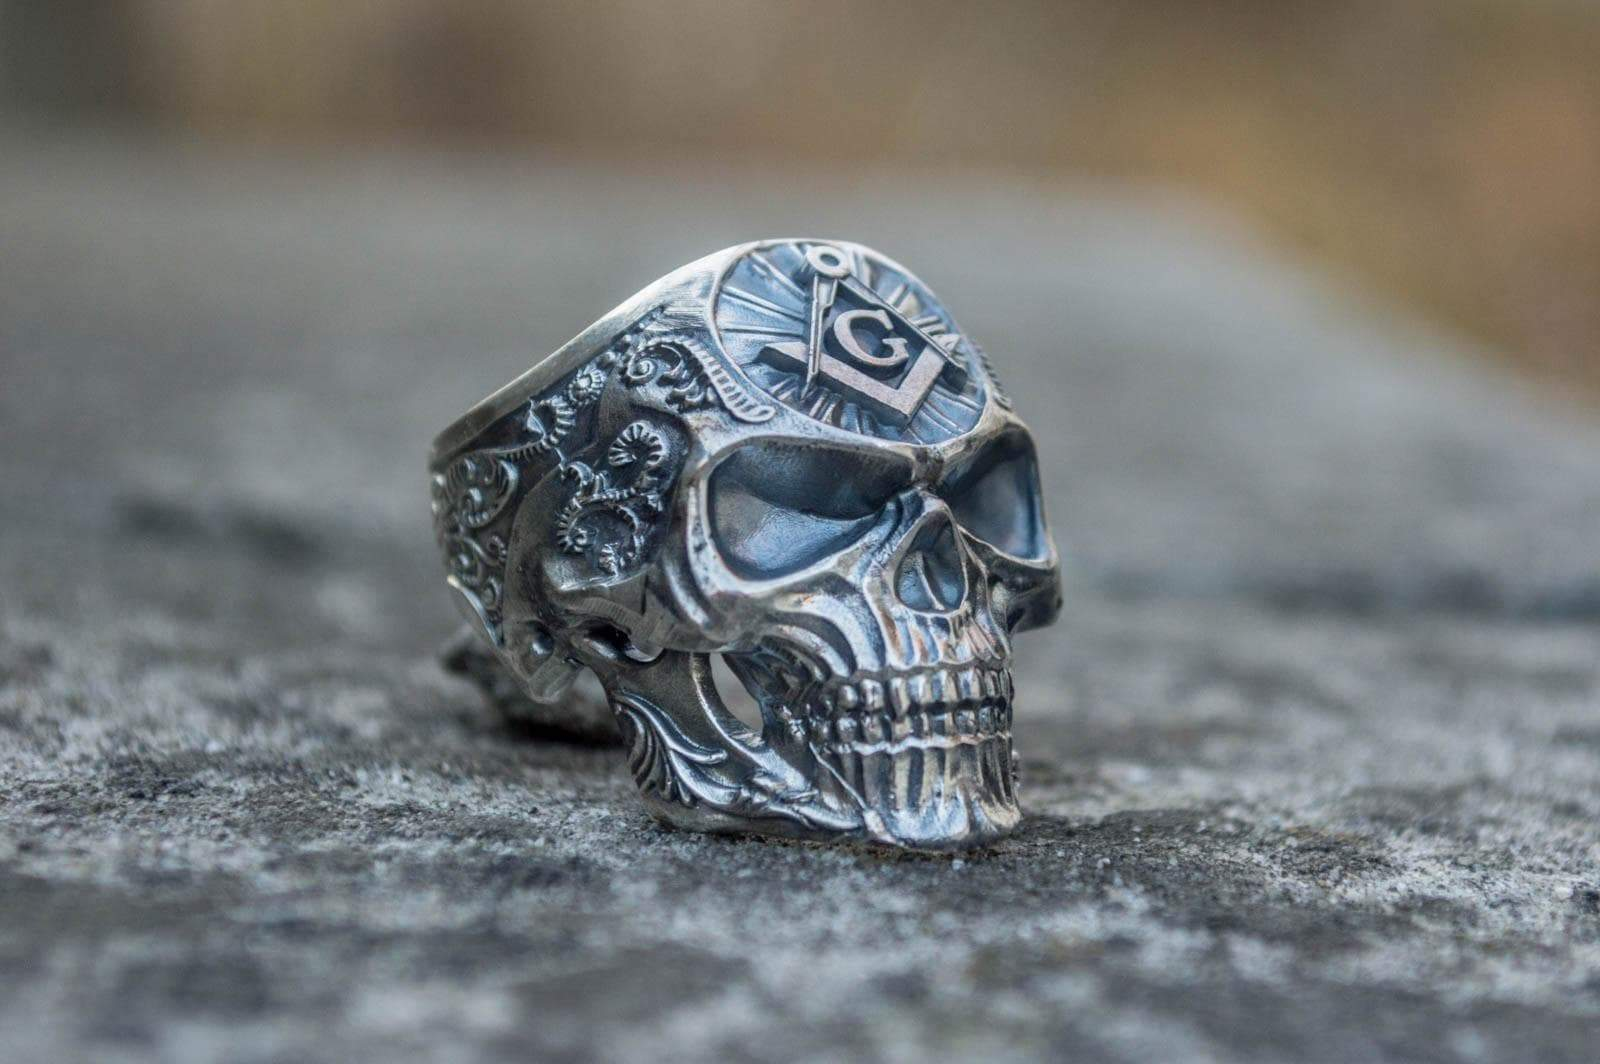 Rings Sterling Silver / US 5 Freemason Skull Sterling Silver Ring with Square & Compass Symbol Ancient Treasures Ancientreasures Viking Odin Thor Mjolnir Celtic Ancient Egypt Norse Norse Mythology